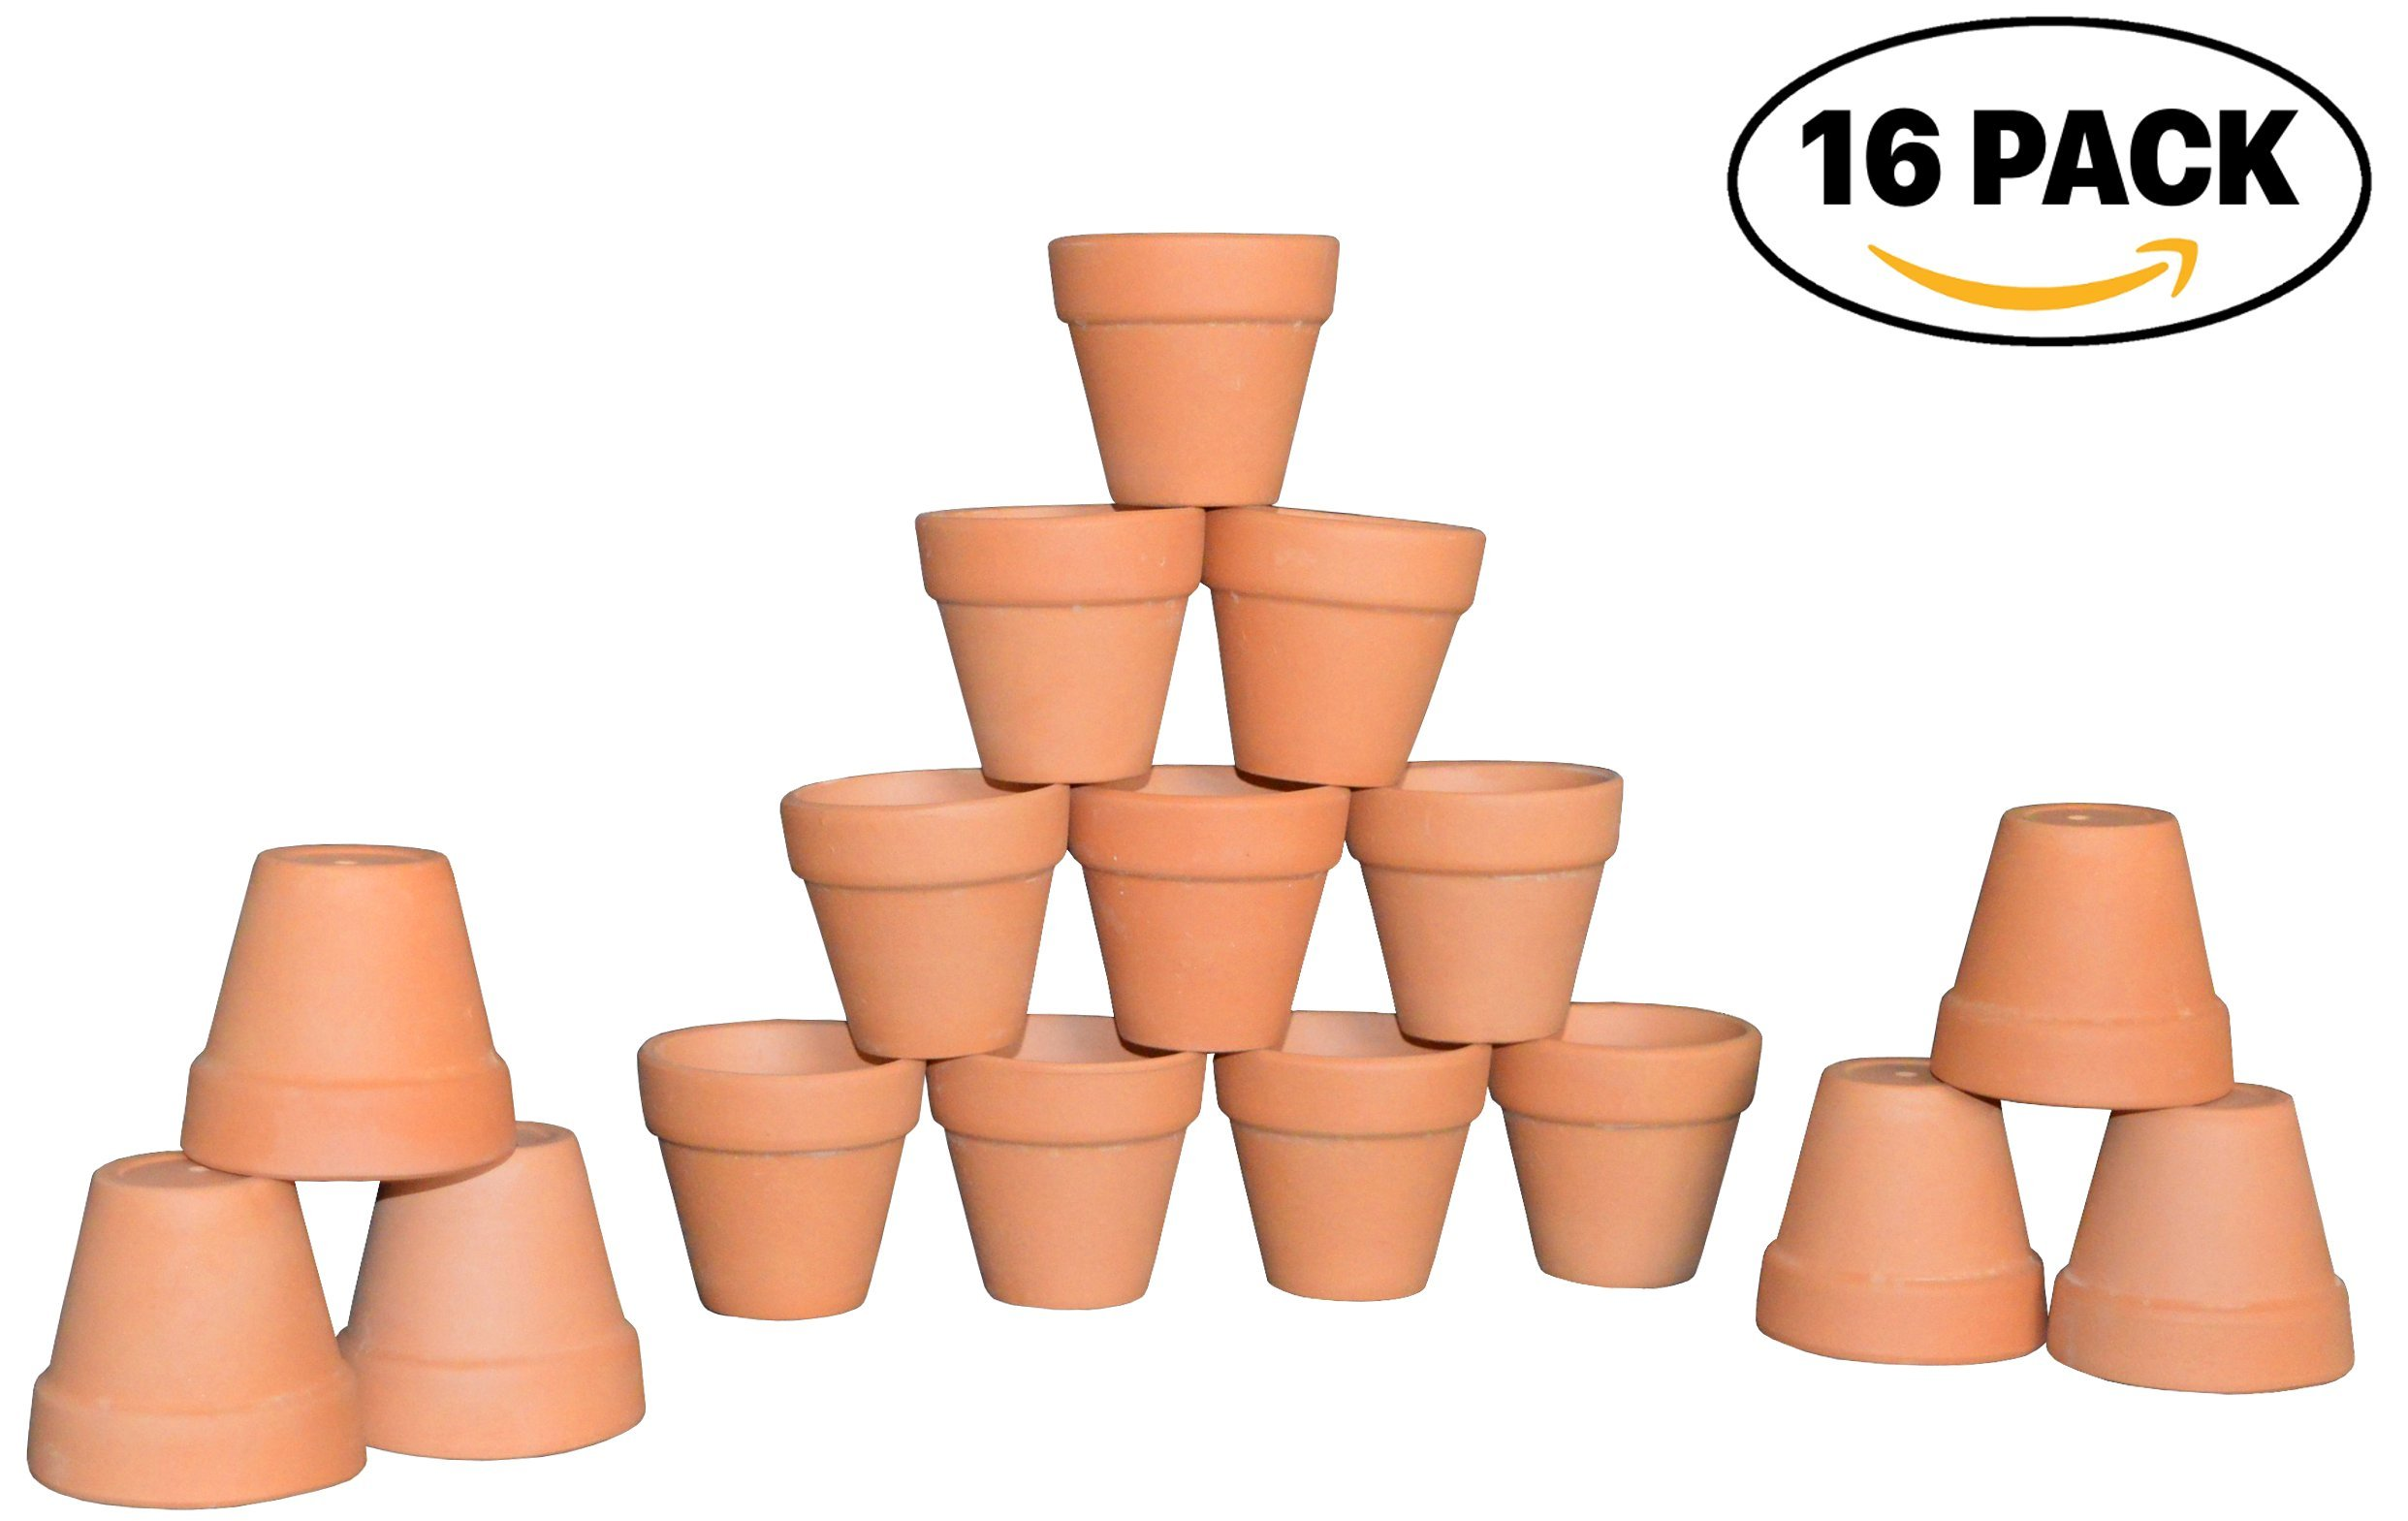 My Urban Crafts 2'' Small Mini Terracotta Clay Pots - Great For Succulent & Cactus Nursery Planter, DIY Craft Projects, Wedding and Party Favors (Set of 16) by My Urban Crafts